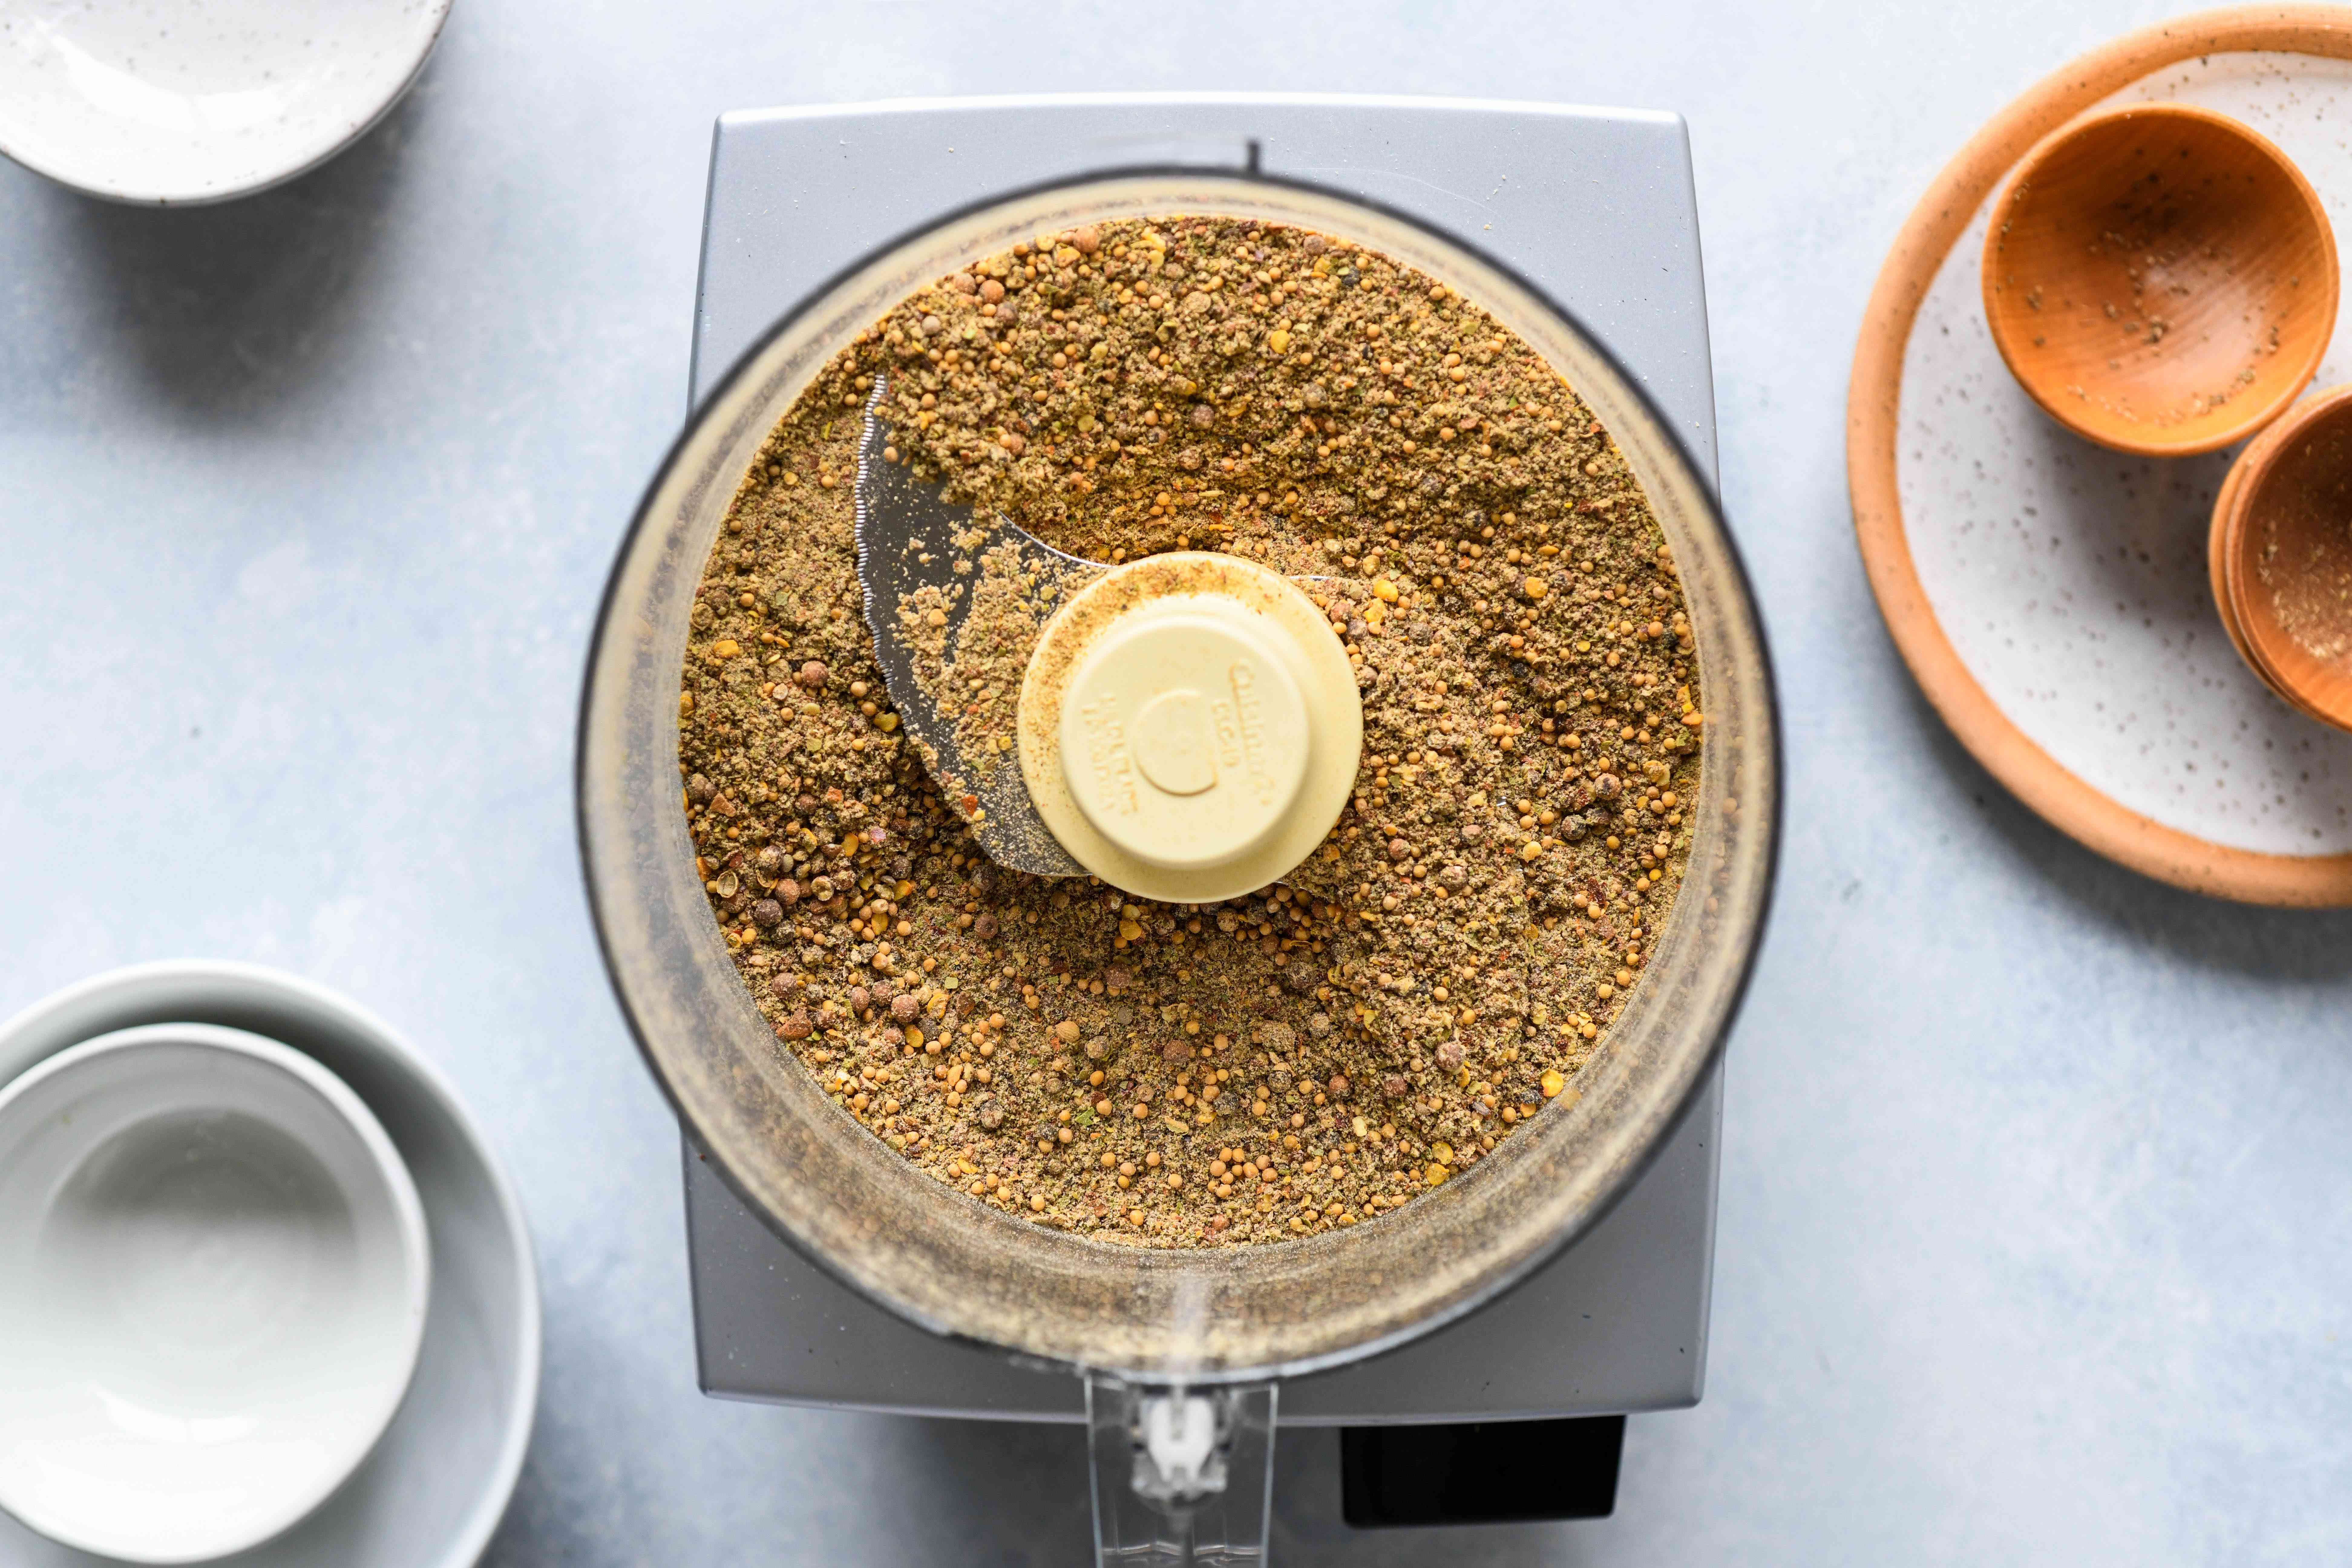 Crab Boil Spice Mix ingredients blended together in a food processor